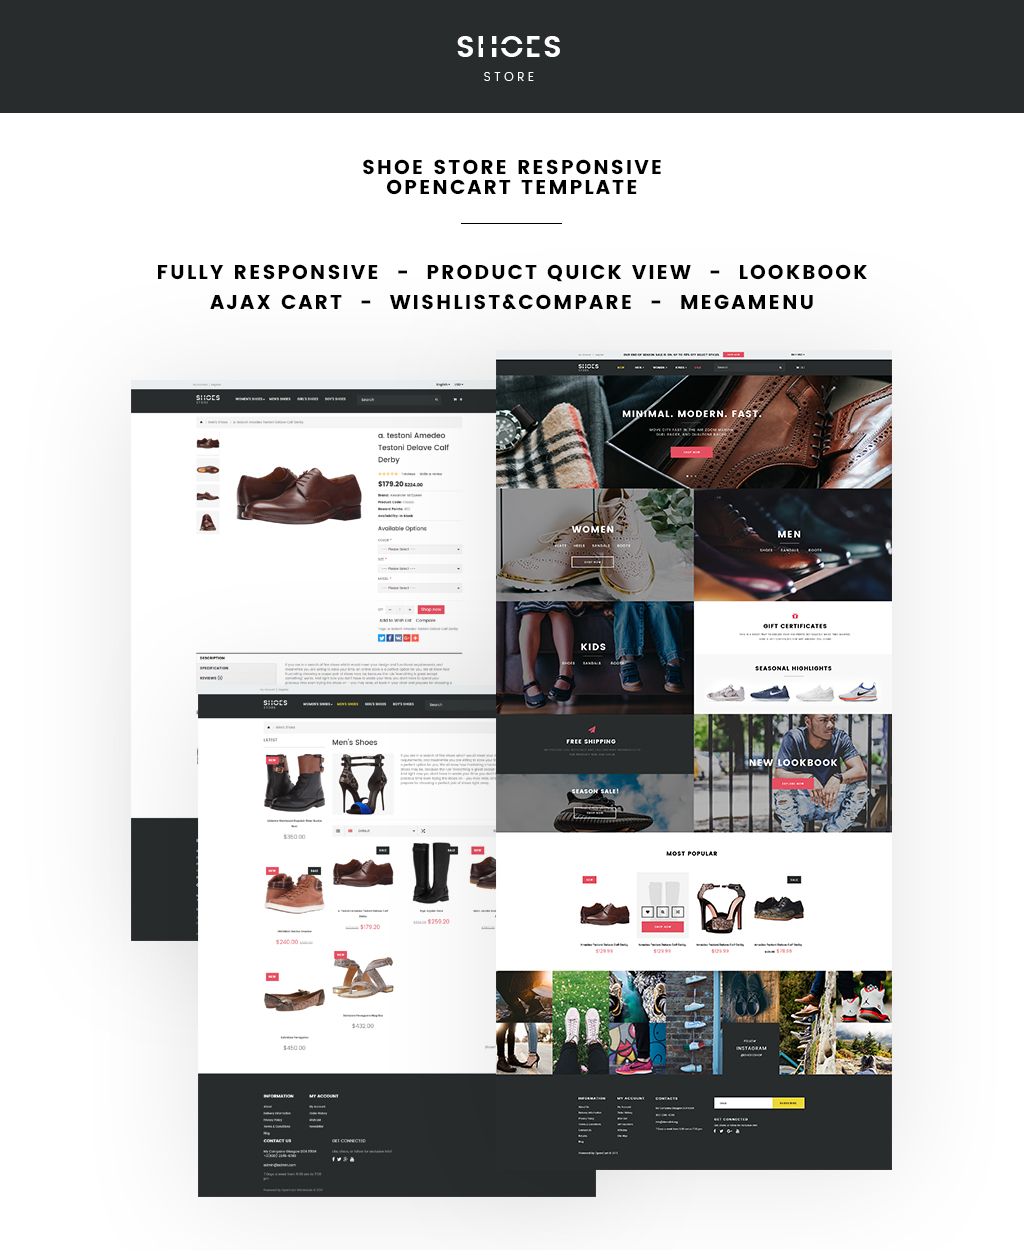 Shoe Store Responsive OpenCart Template